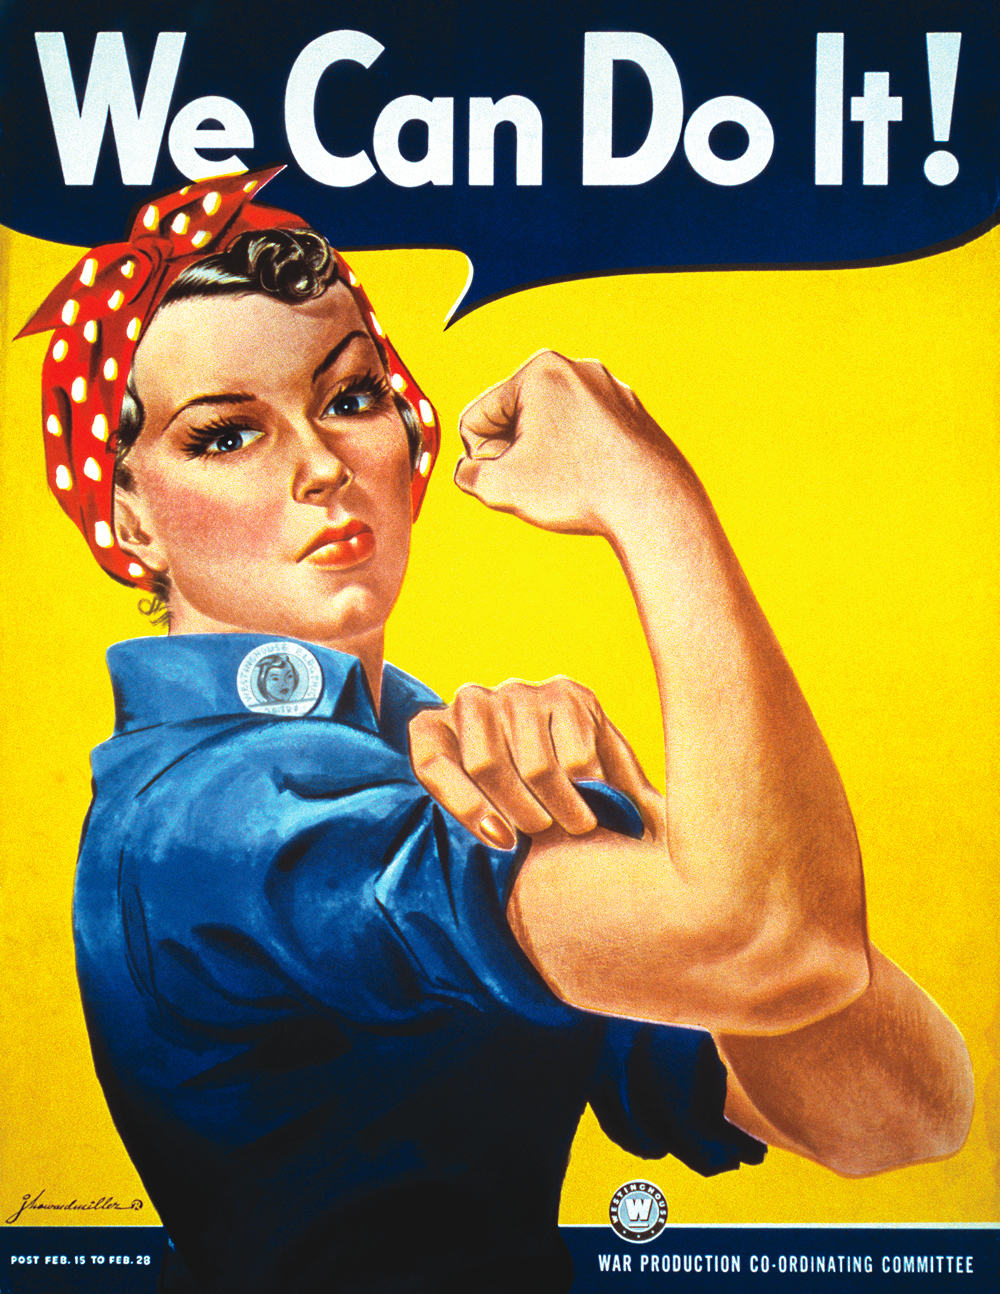 Iconic WW II poster of Rosie the Riveter